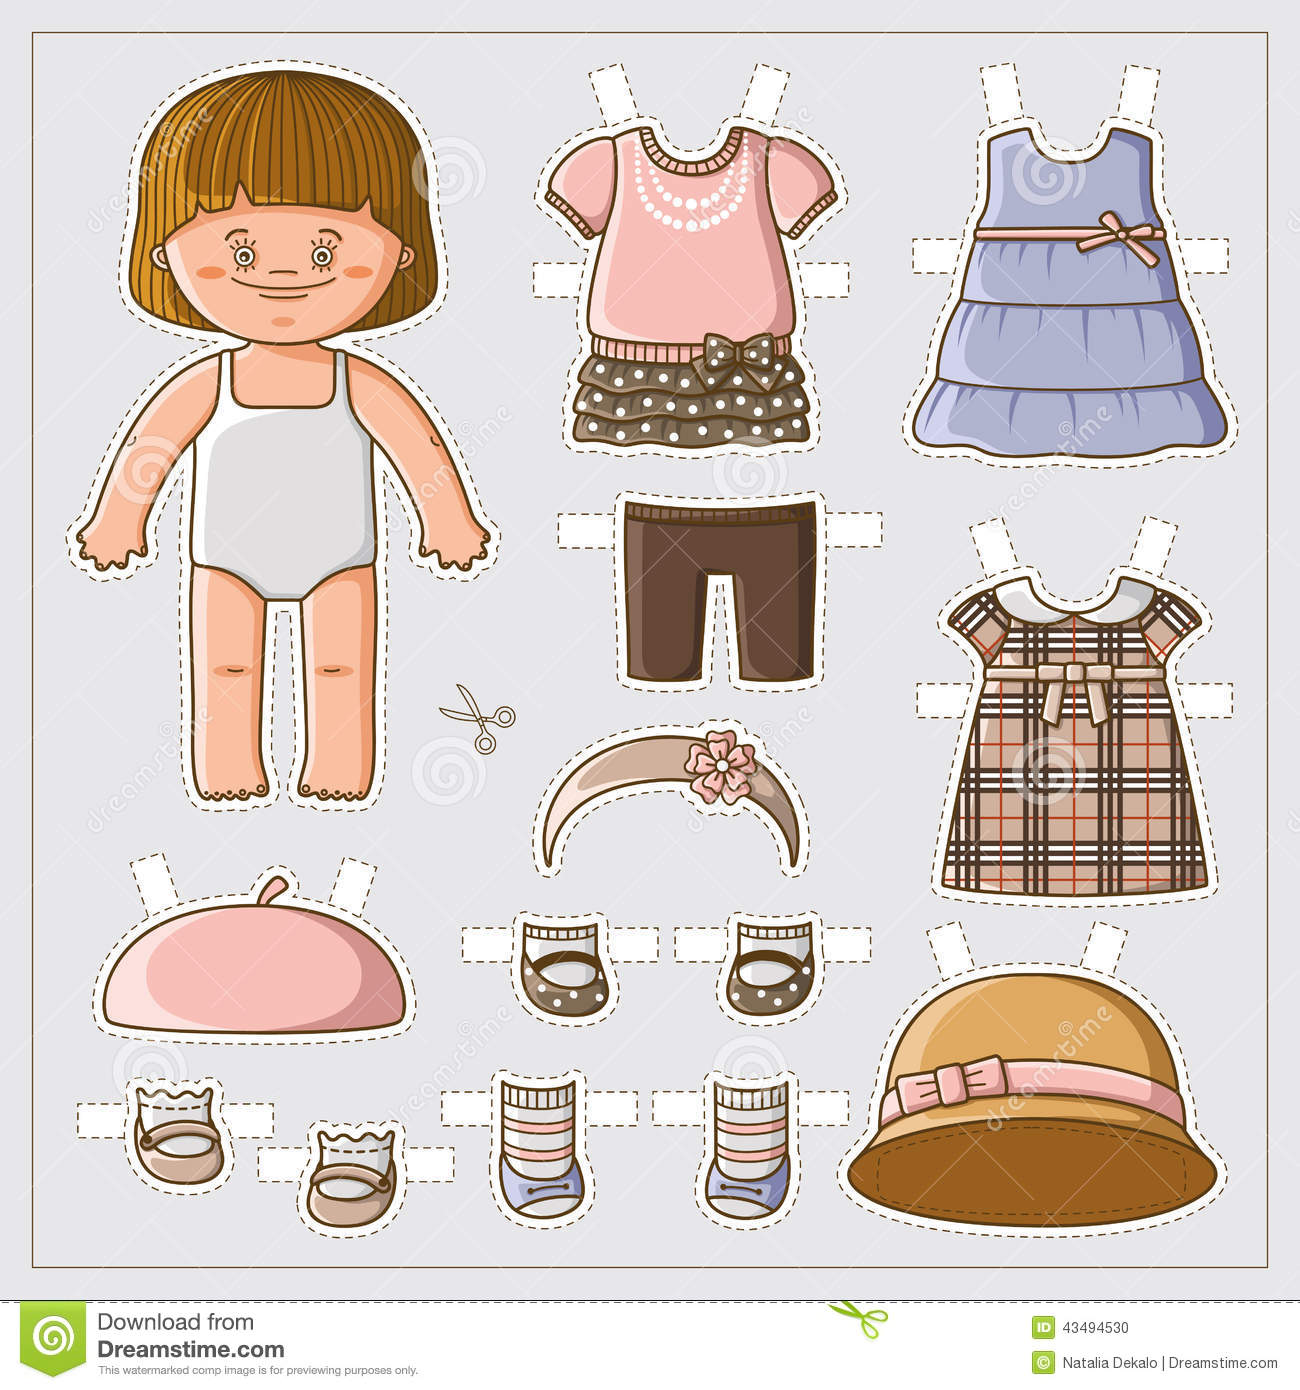 Cute Paper Doll Stock Vector  Illustration Of Cute, Card